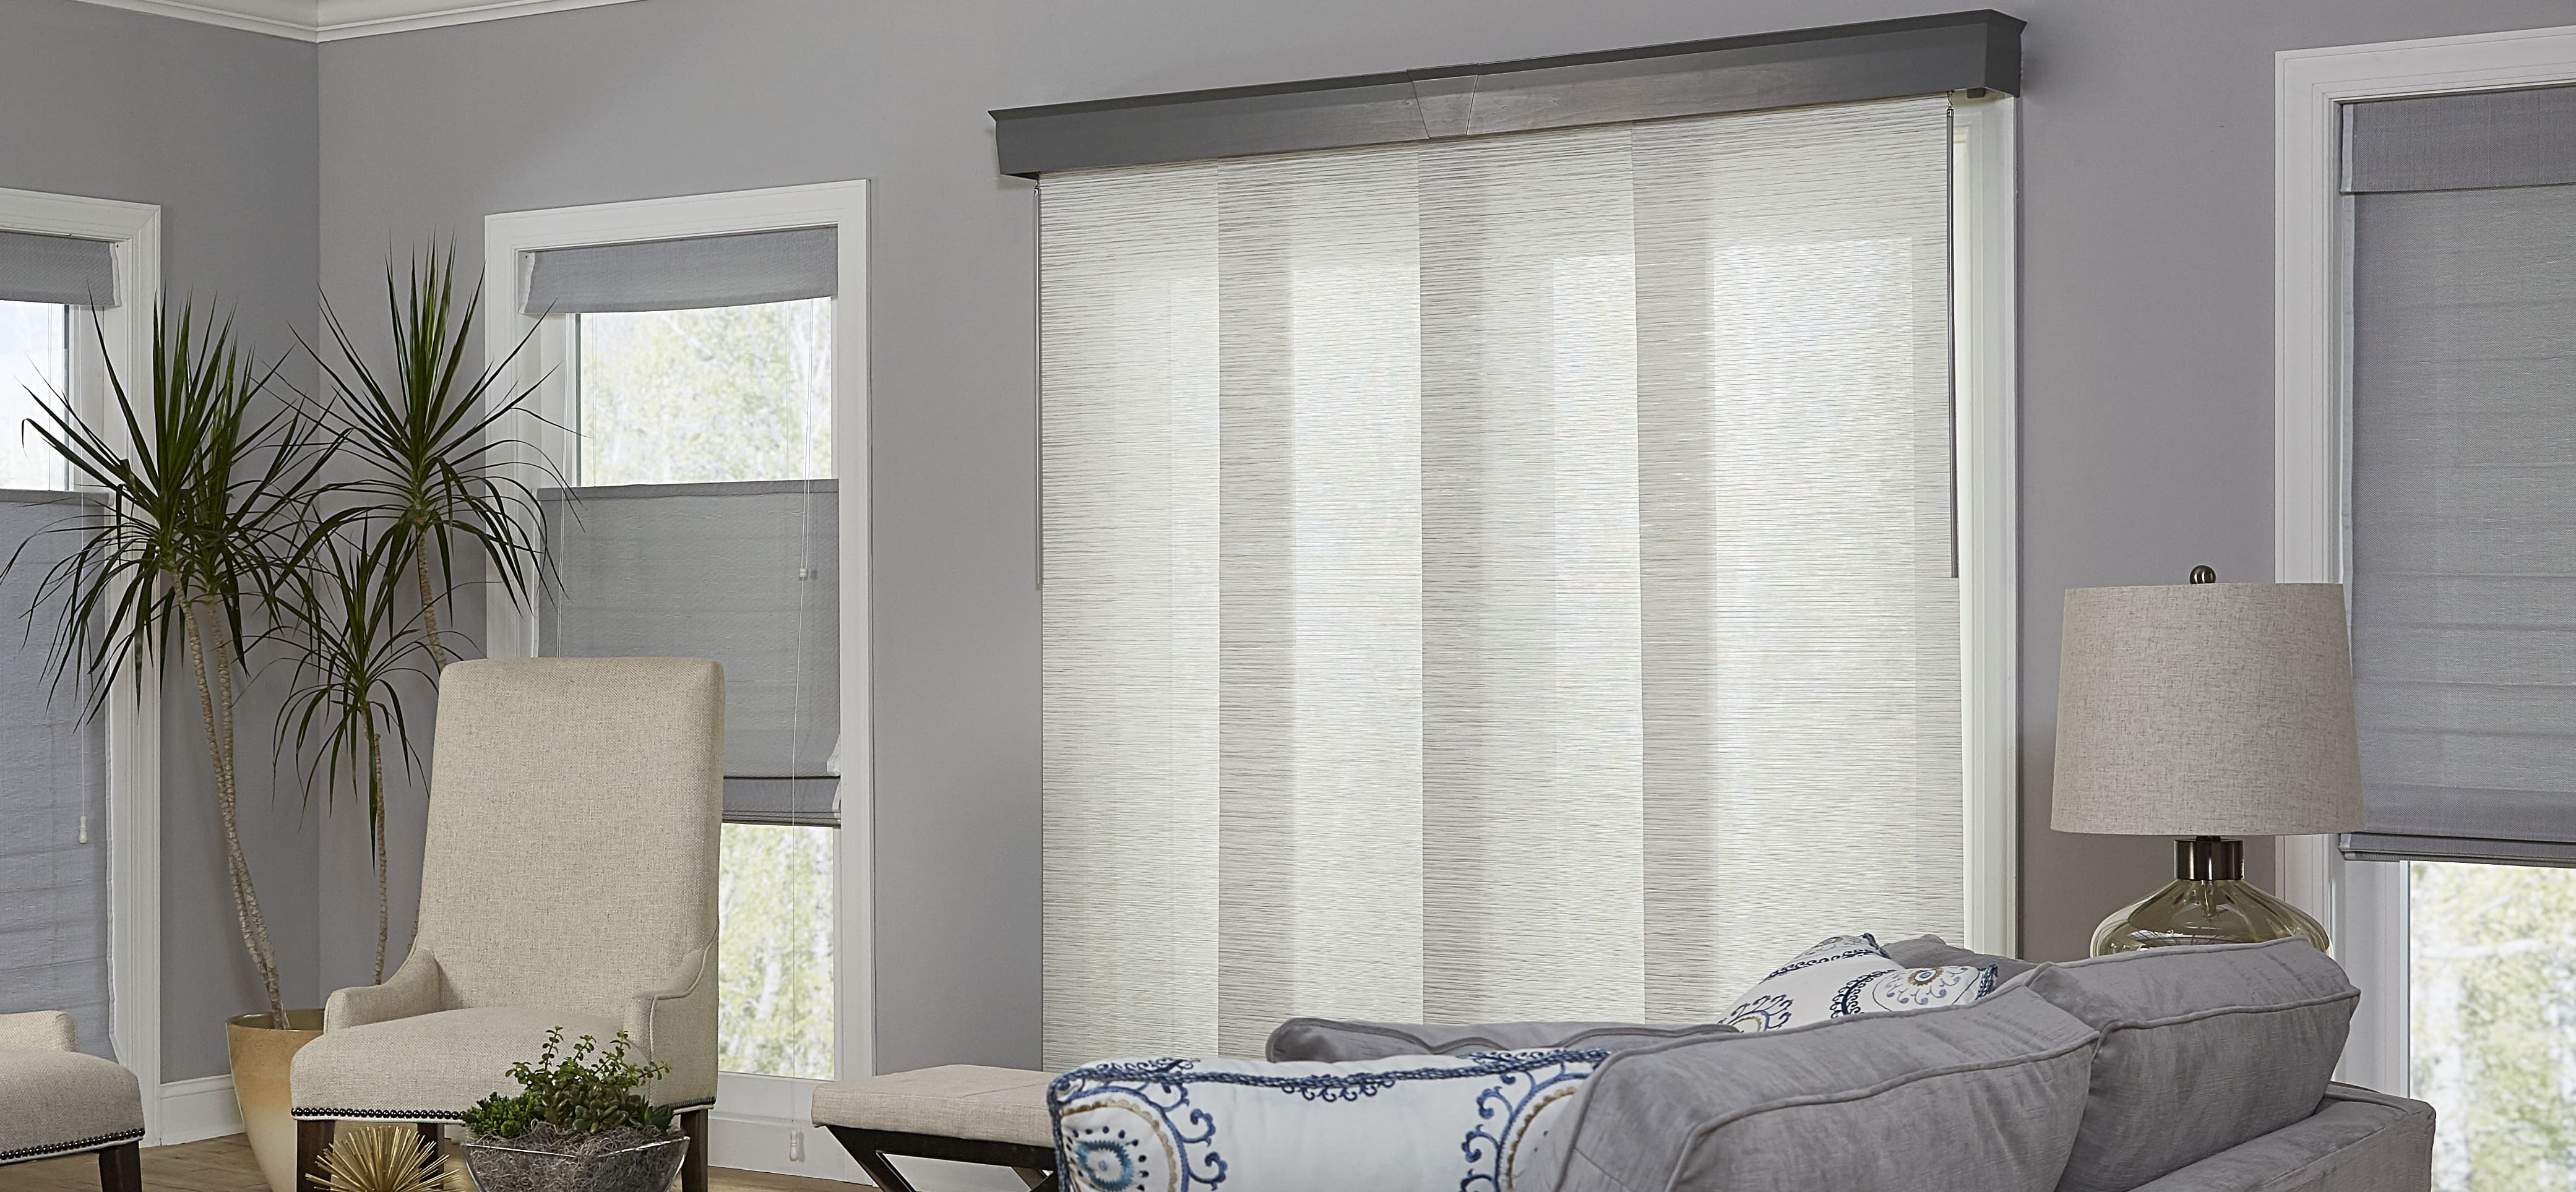 If you need to block glare and harmful UV rays coming in through your sliding glass door traditional vertical blinds aren\u0027t the only choice. & Blinds for Sliding Glass Doors - Alternatives to Vertical Blinds ...